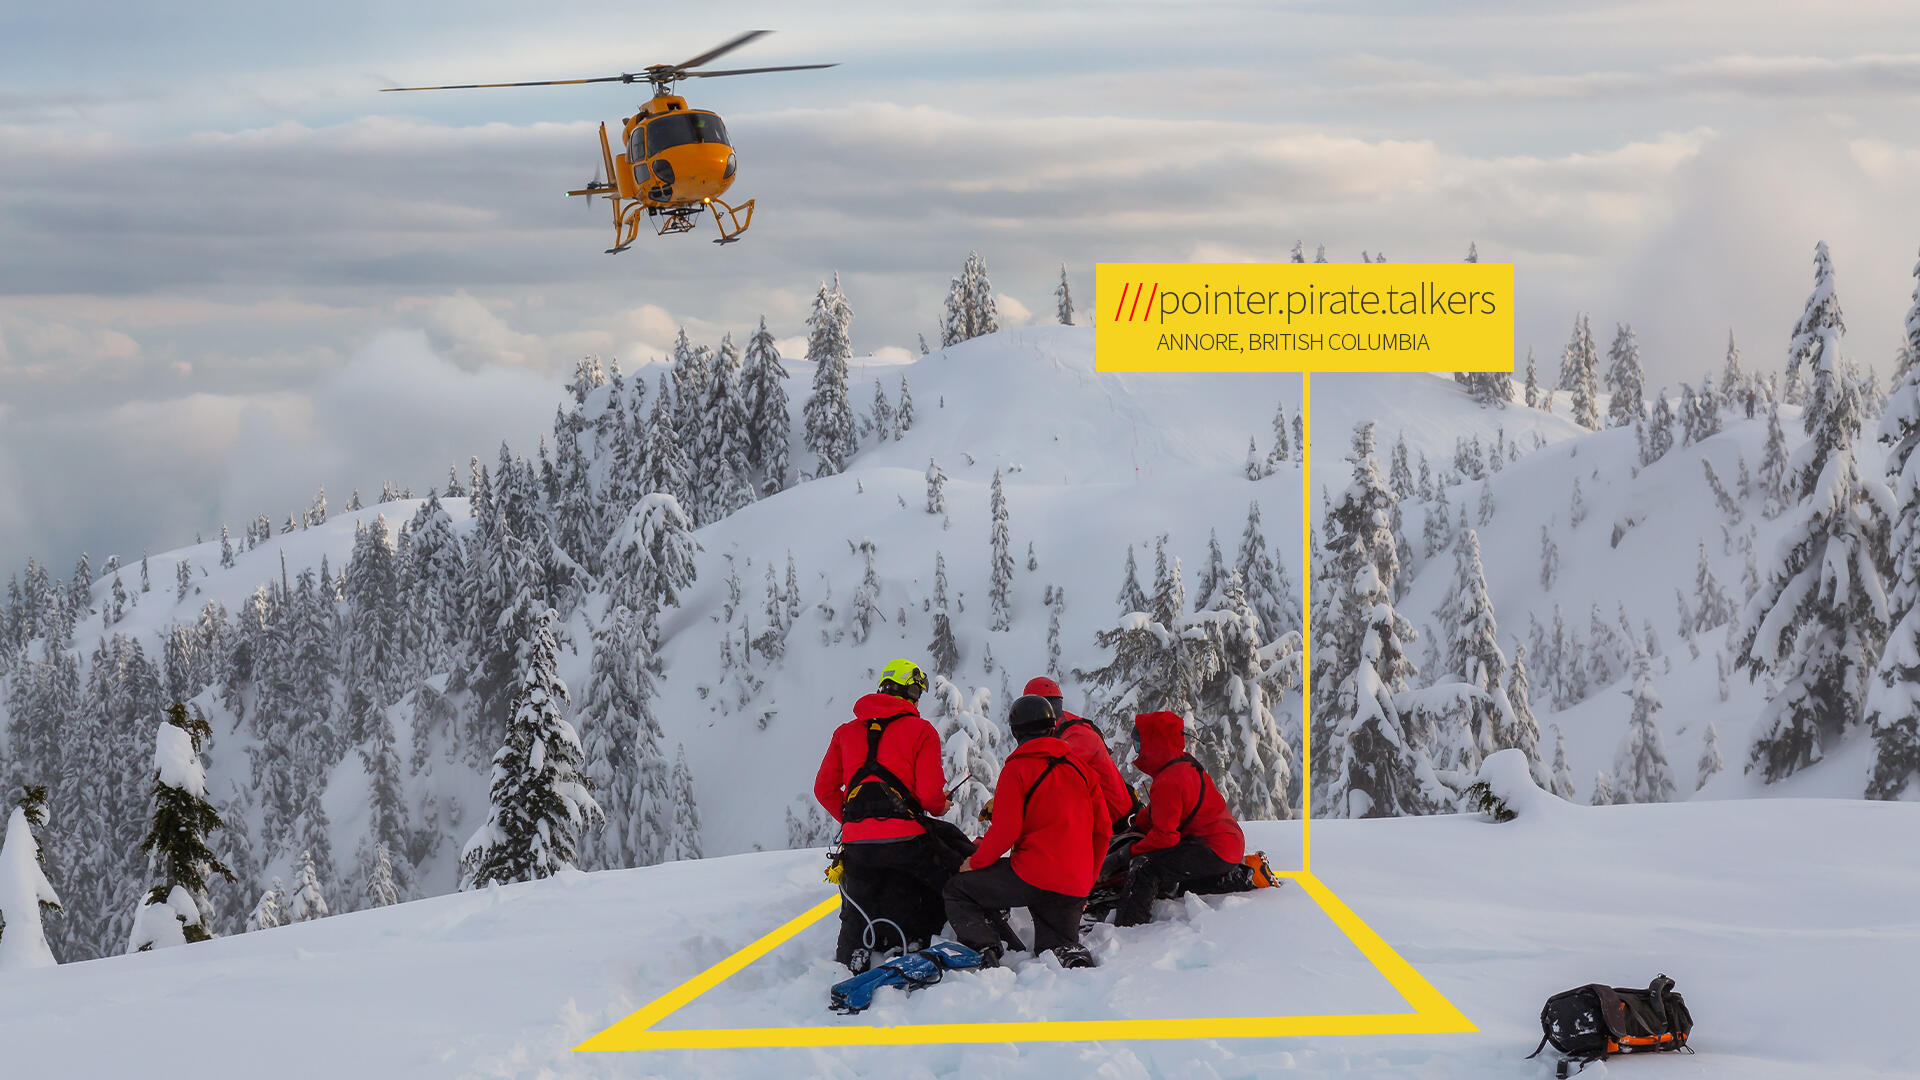 Several emergency responders in Canada are using What3words digital location to help people pinpoint their whereabouts when lost or injured. The company's app or website tells you a three-word label for every 10-foot square on the planet.